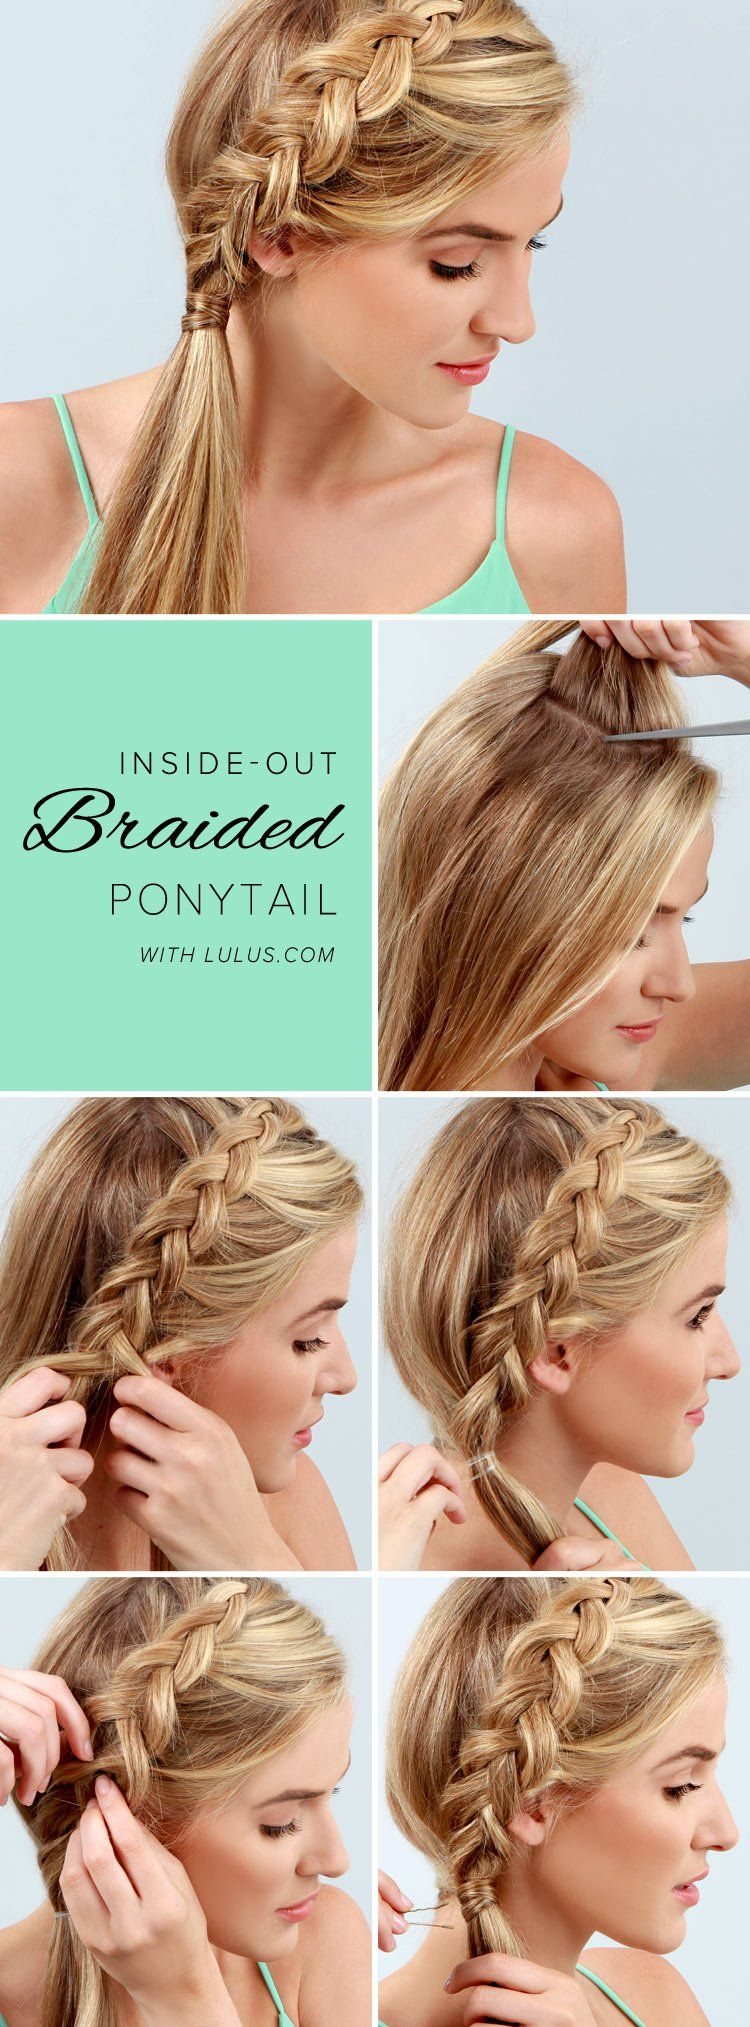 15 Stylish Step by Step Hairstyle Tutorials You Must See ...